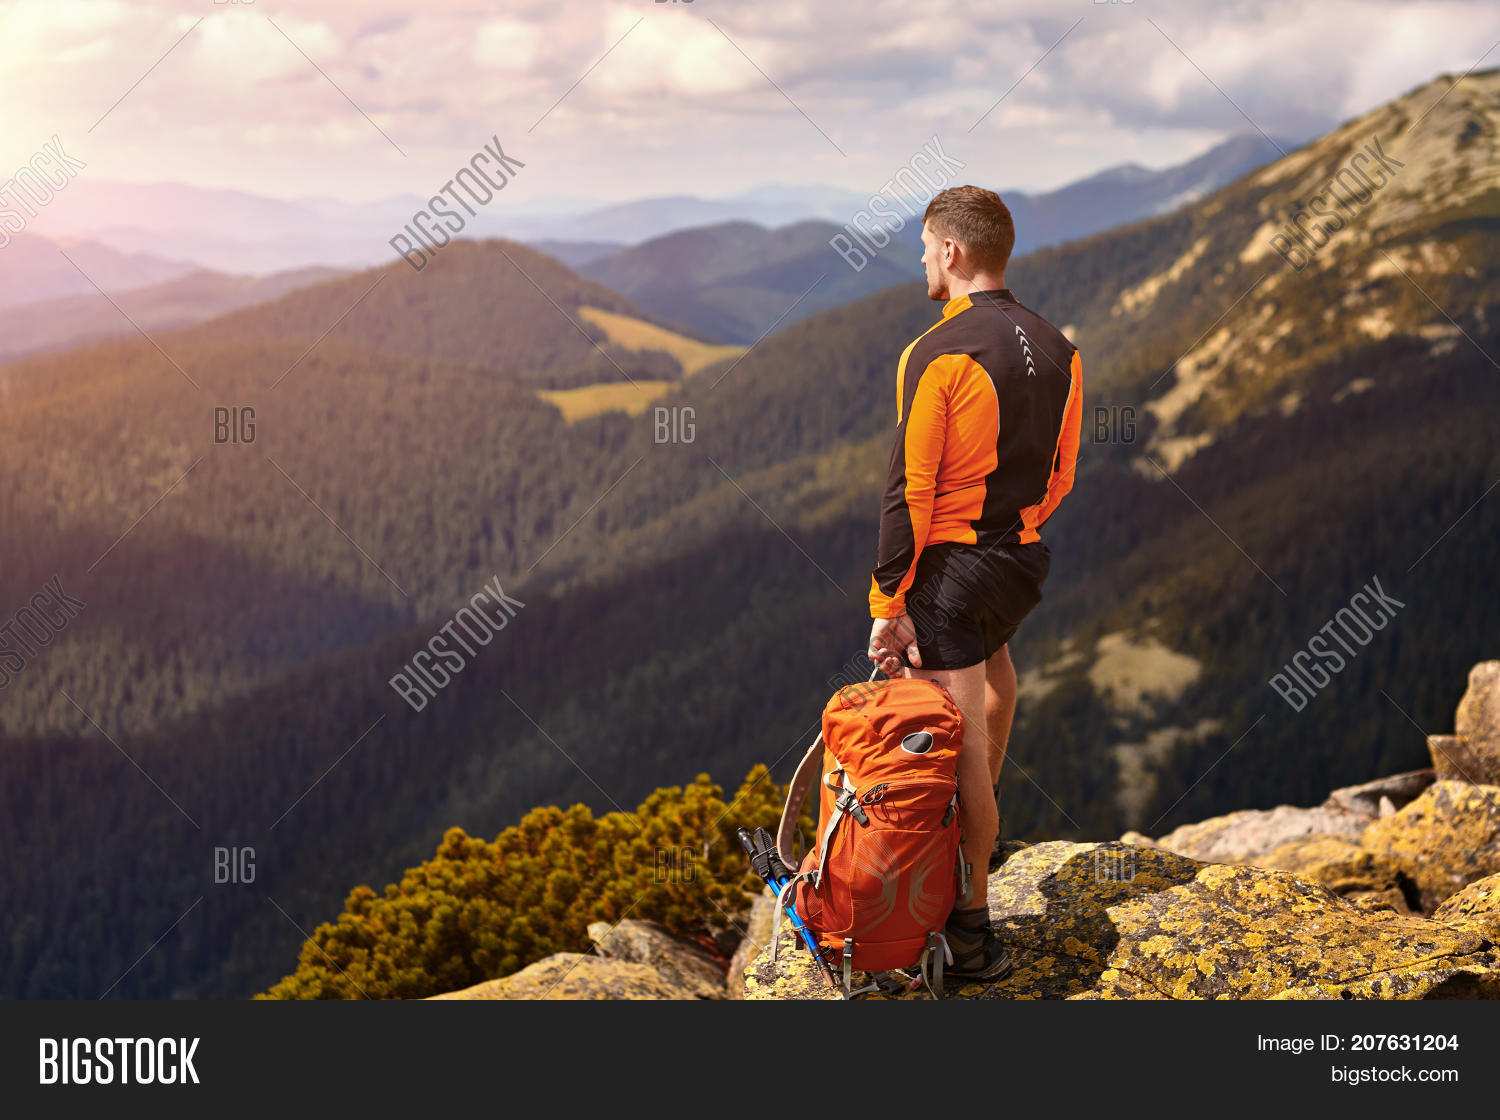 8c5f22844c09 Man traveler with backpack hiking Travel Lifestyle concept adventure active summer  vacations outdoor rocky mountains on